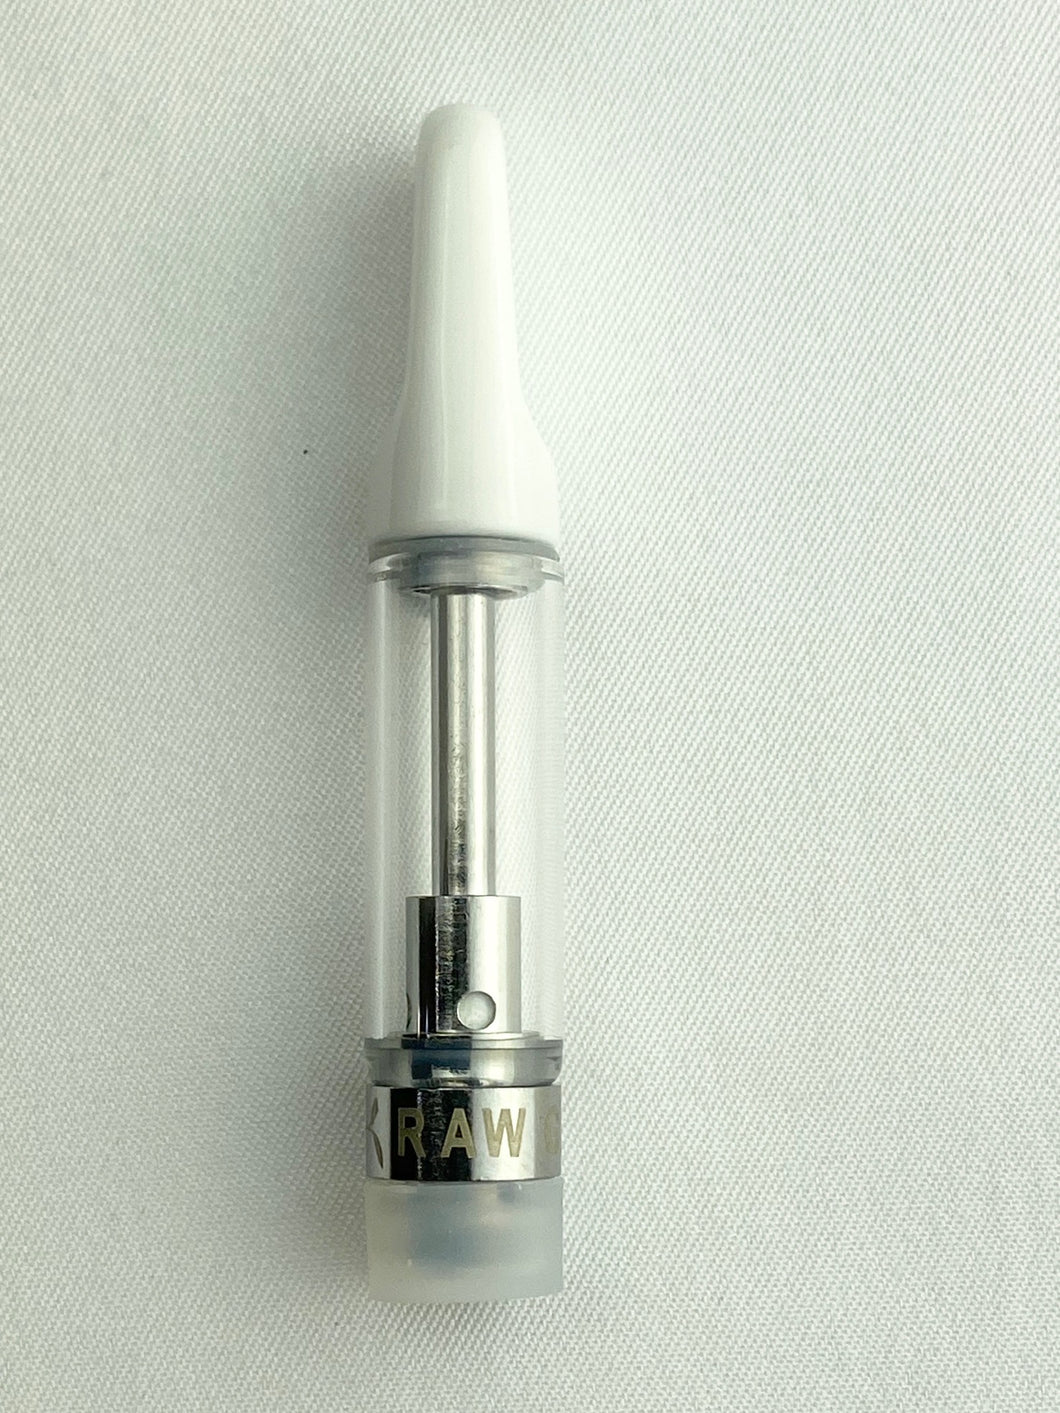 Raw Garden Vape Cartridges 1.0ml (100 units)